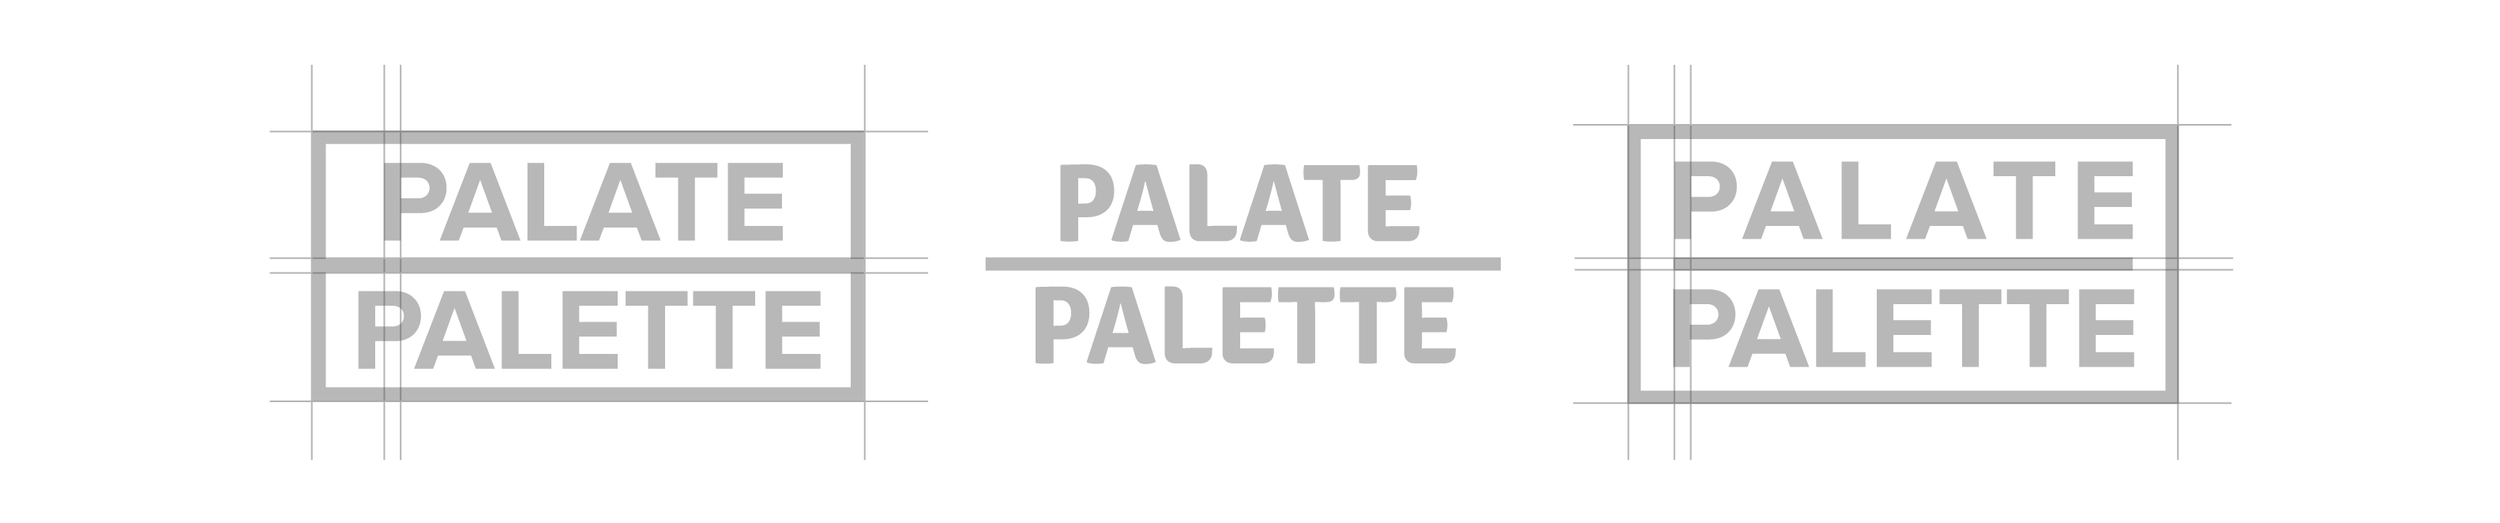 Concept: PALATE on PALETTE